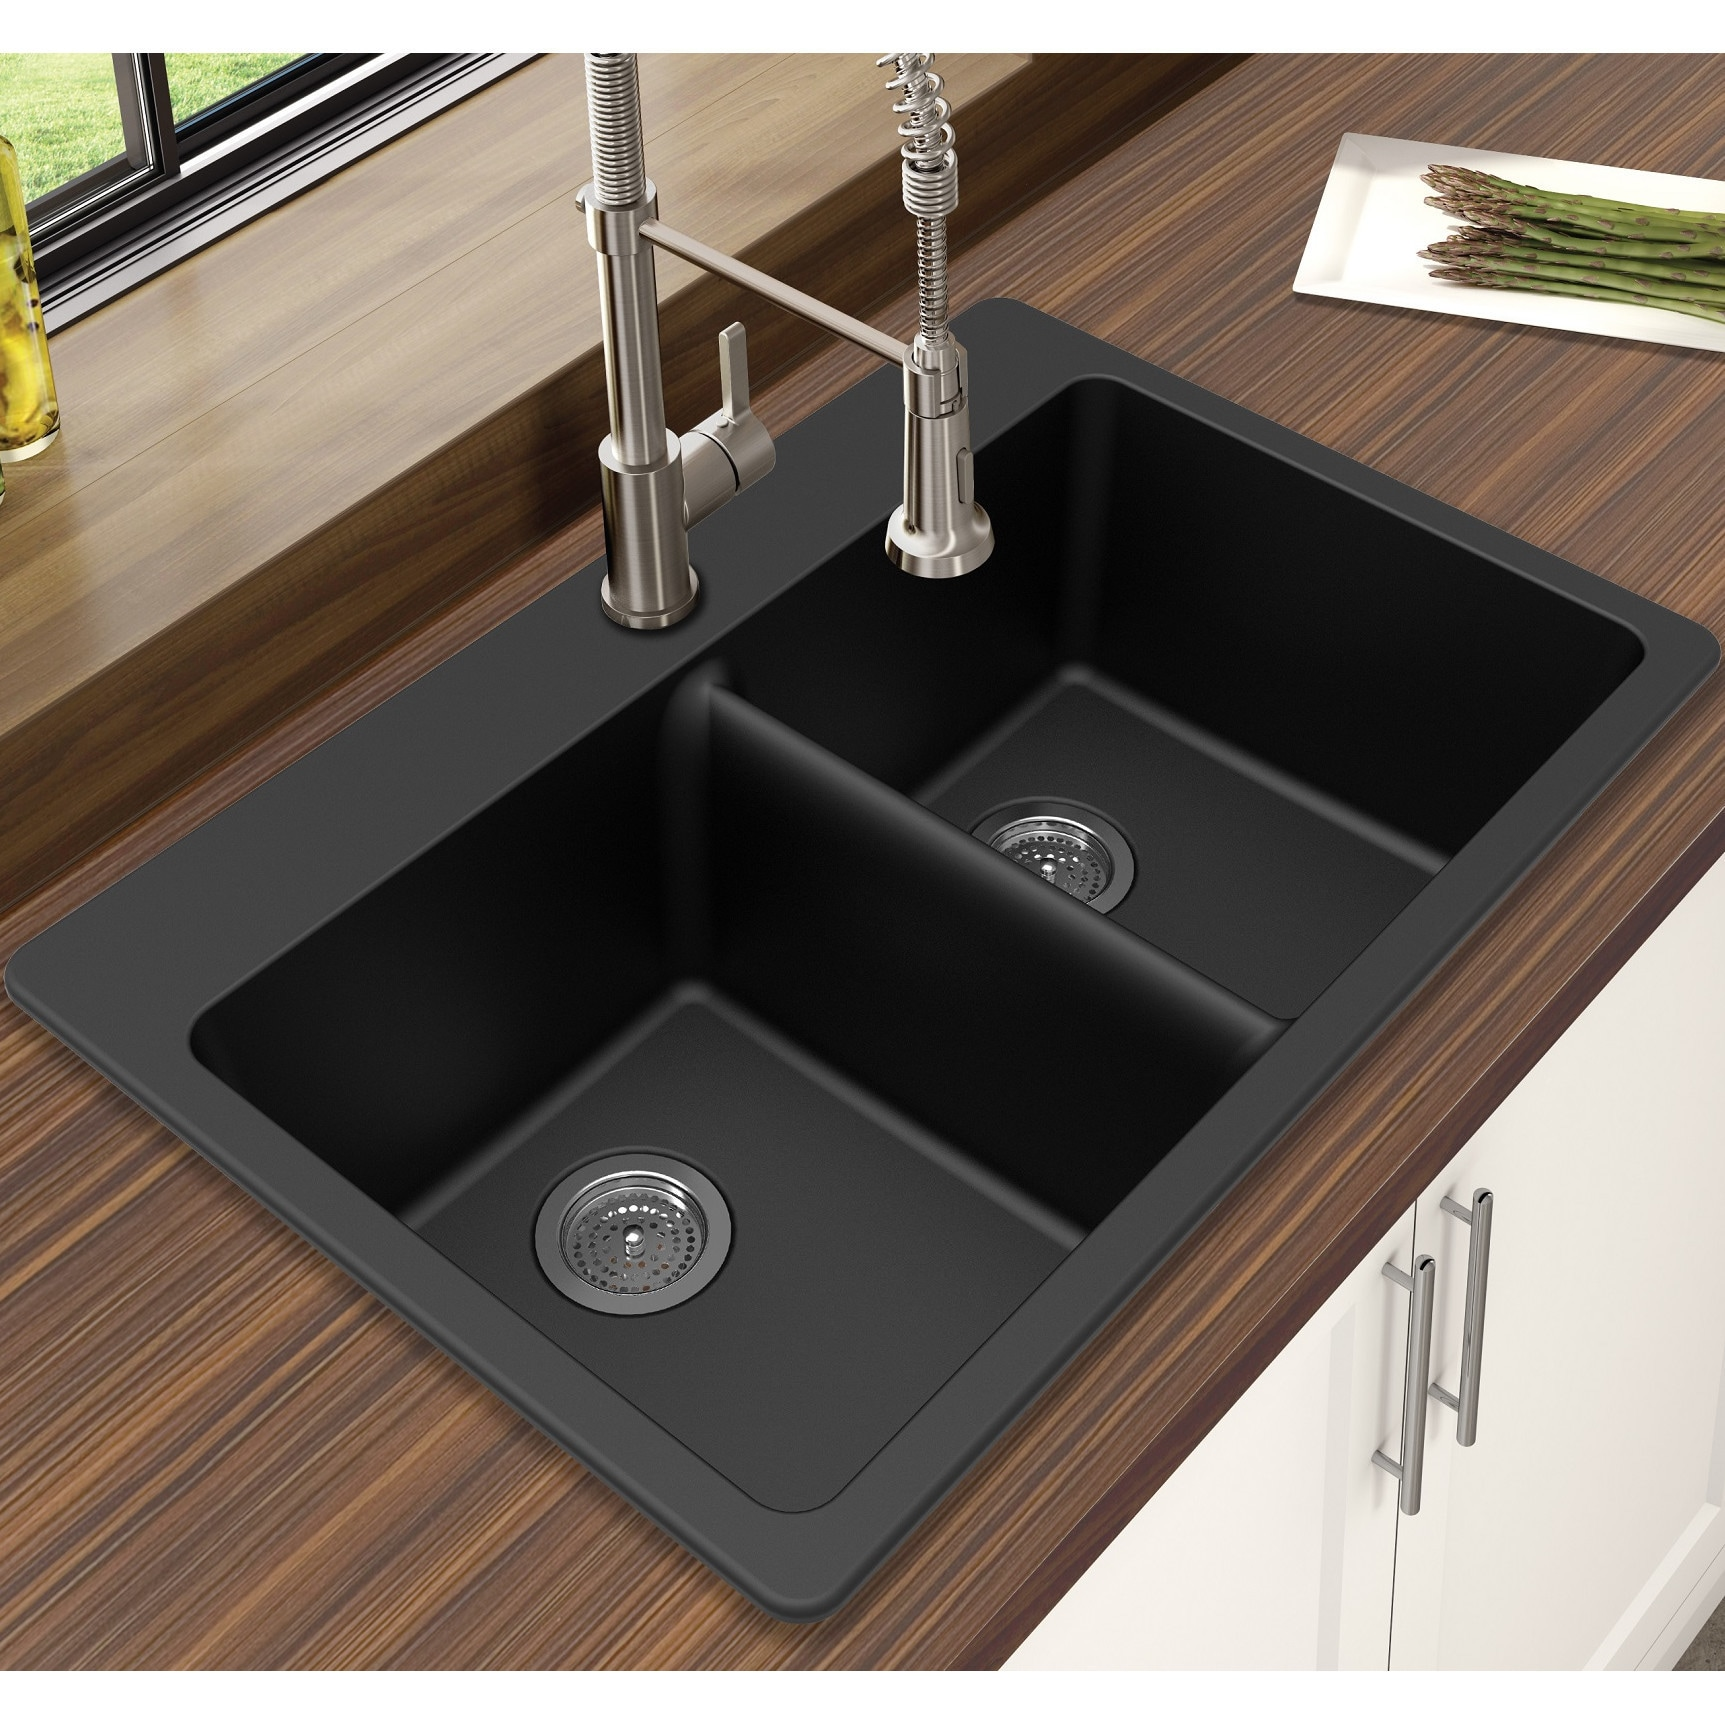 Winpro Granite Quartz 33 X 22 X 9 1 2 Double Bowl Dual Mount Sink Overstock 14646724